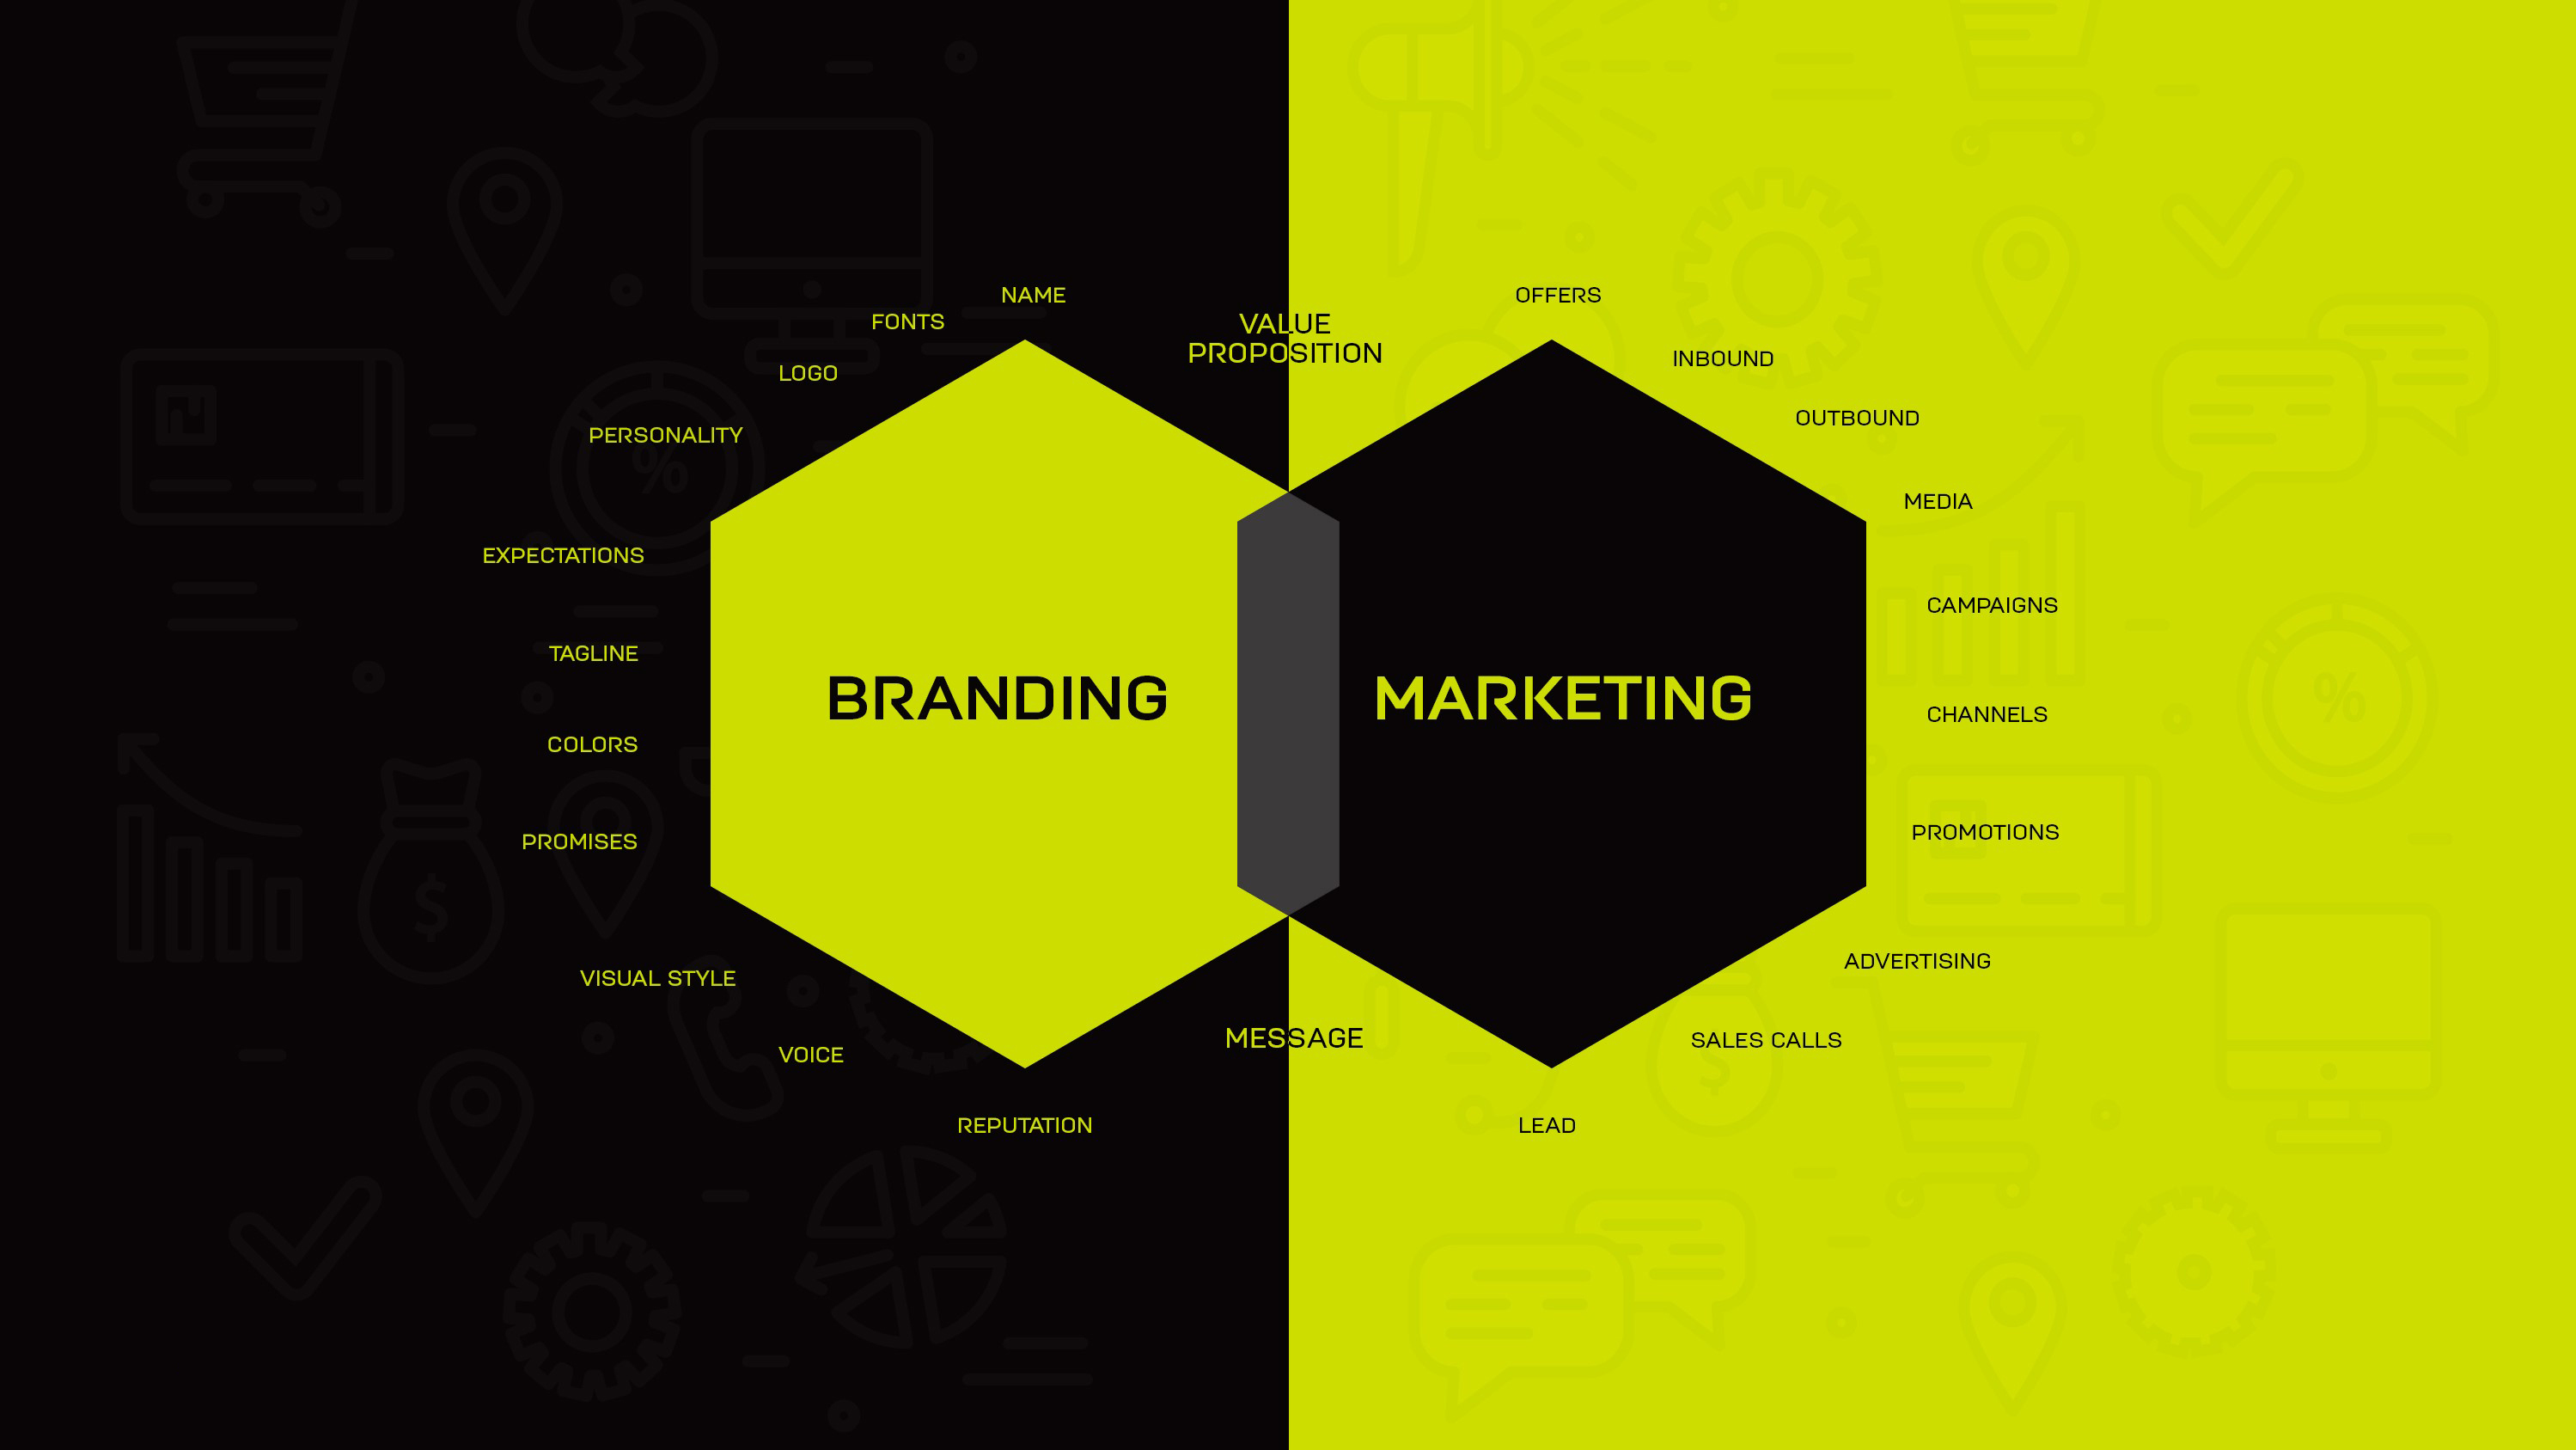 branding and marketing key elements